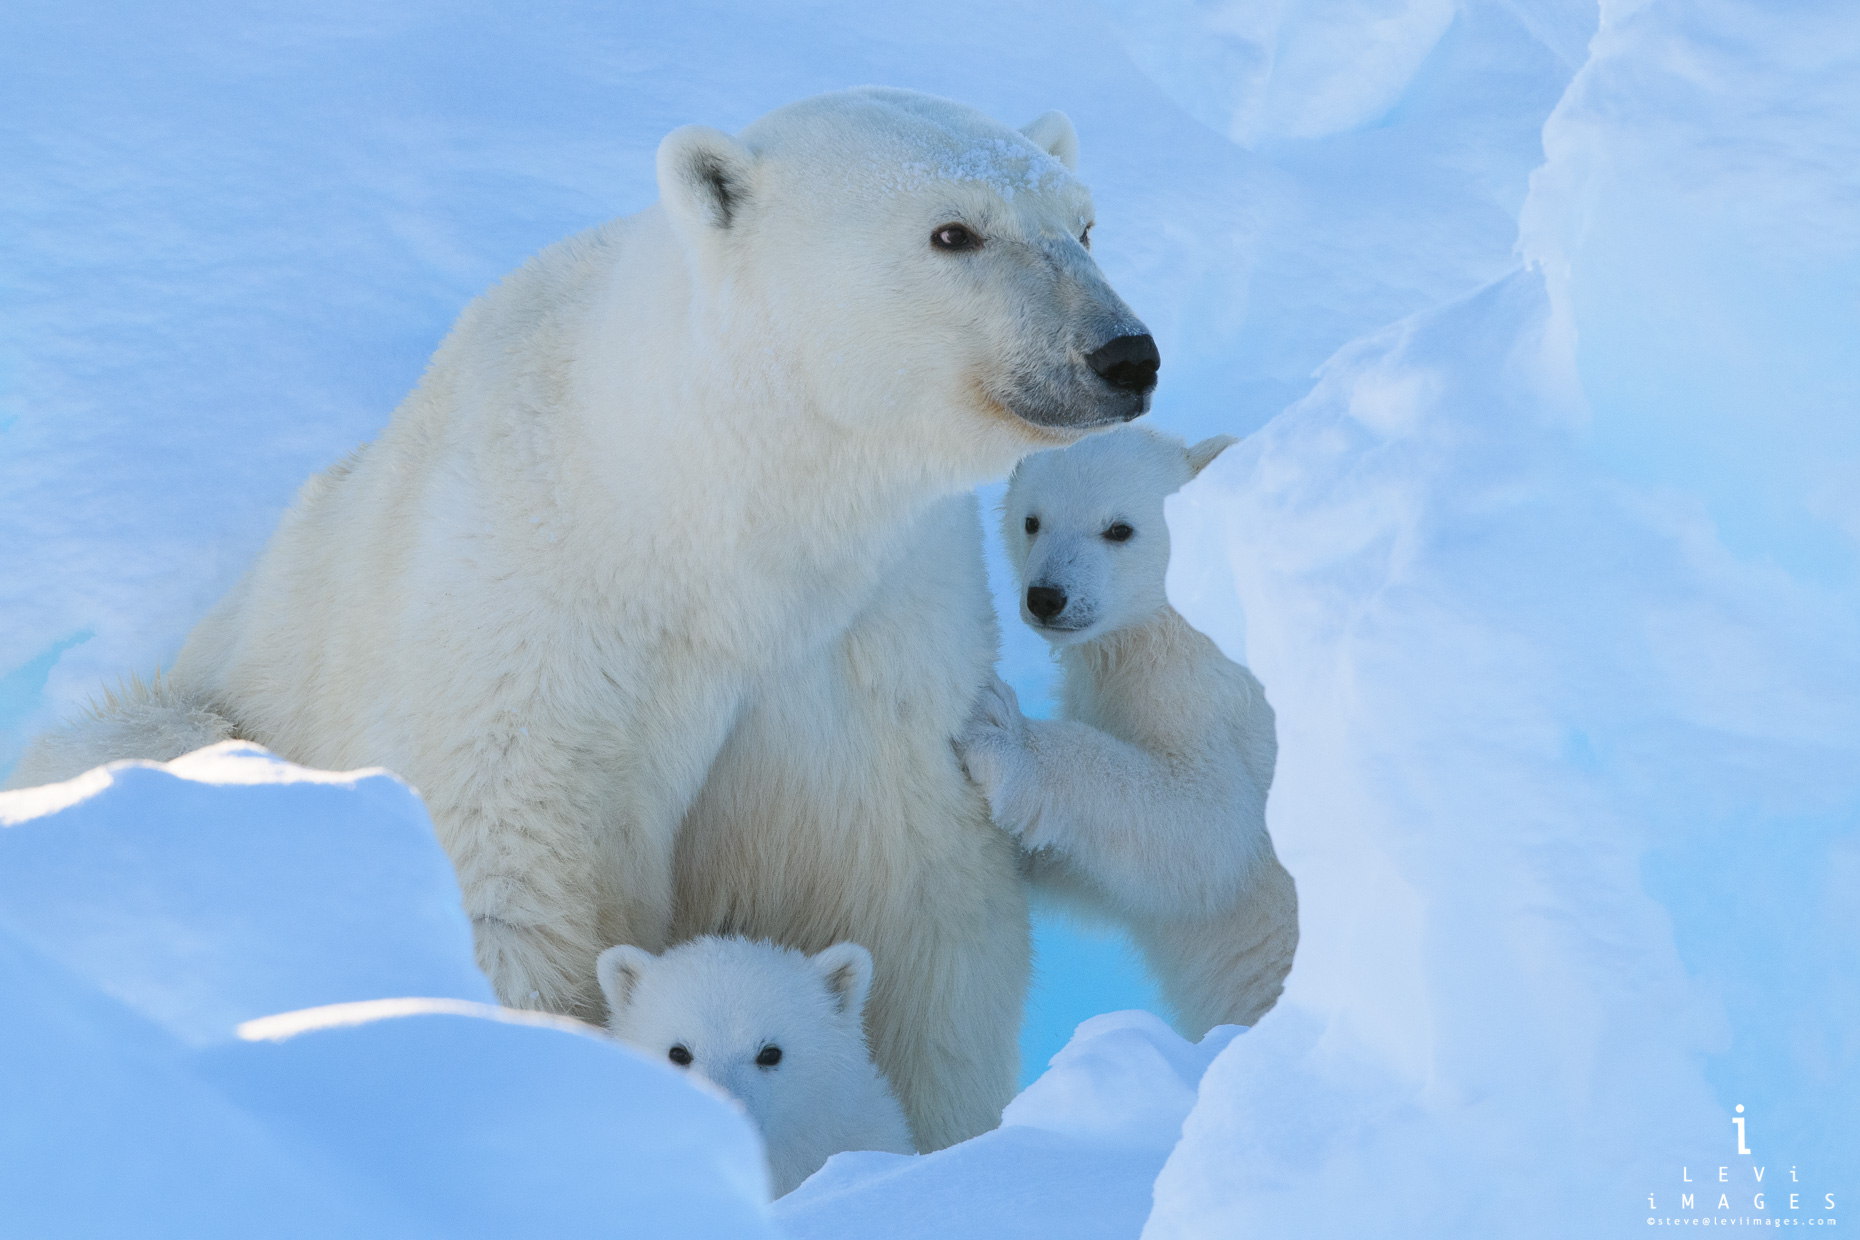 Polar bear (Ursus maritimus) cubs stay close as mom checks for threats. Baffin Island, Nunavut, Canada